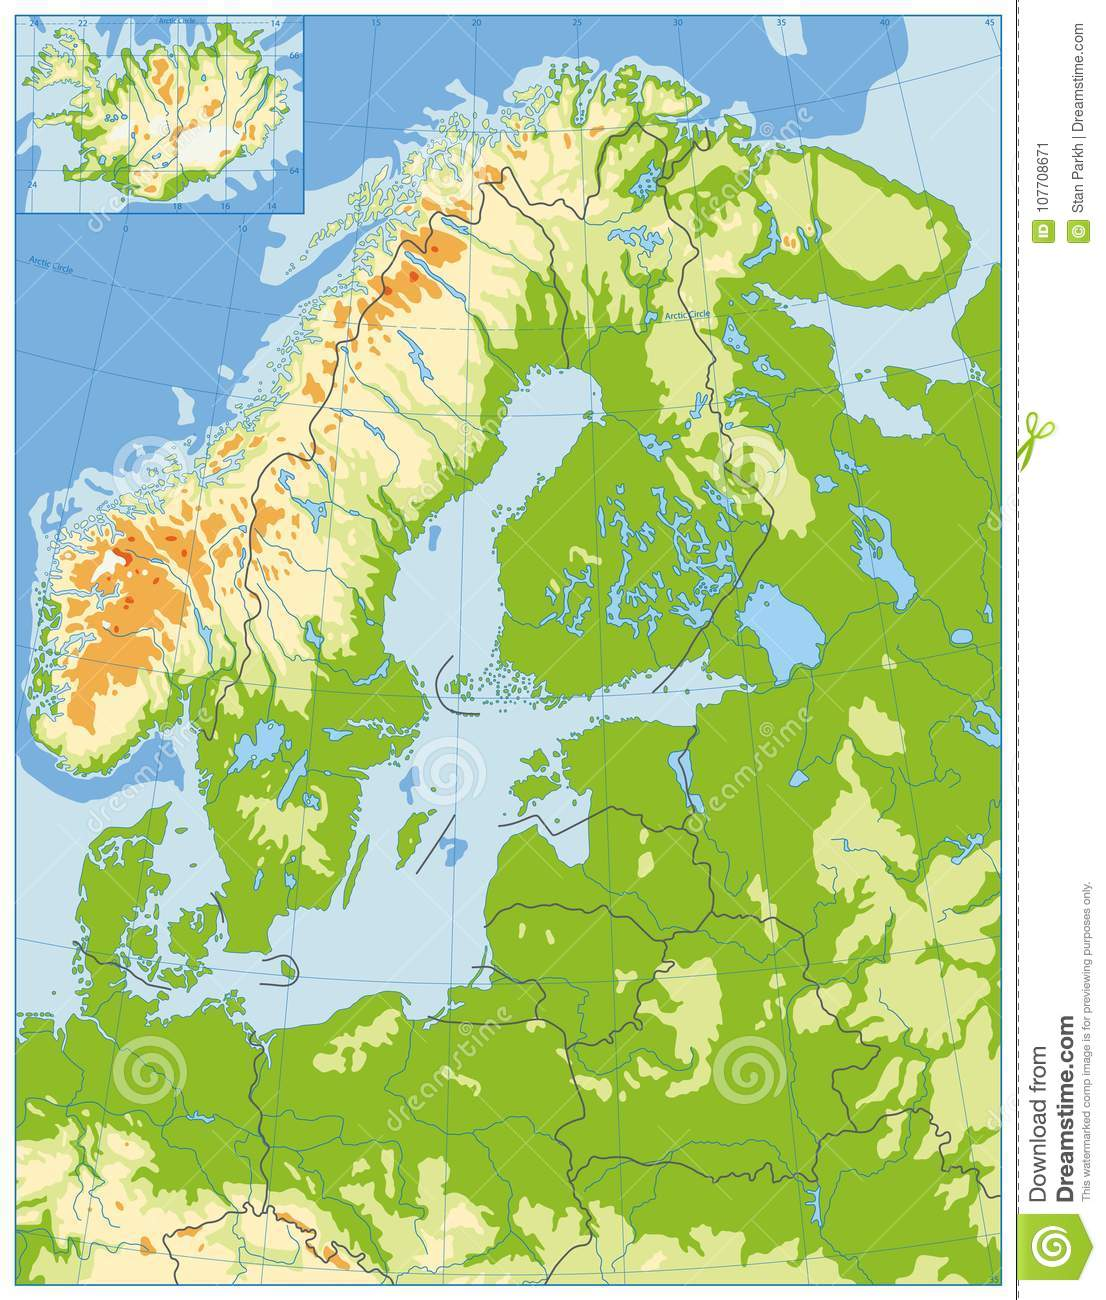 Northern Europe Physical Map. No Text Stock Vector - Illustration of ...